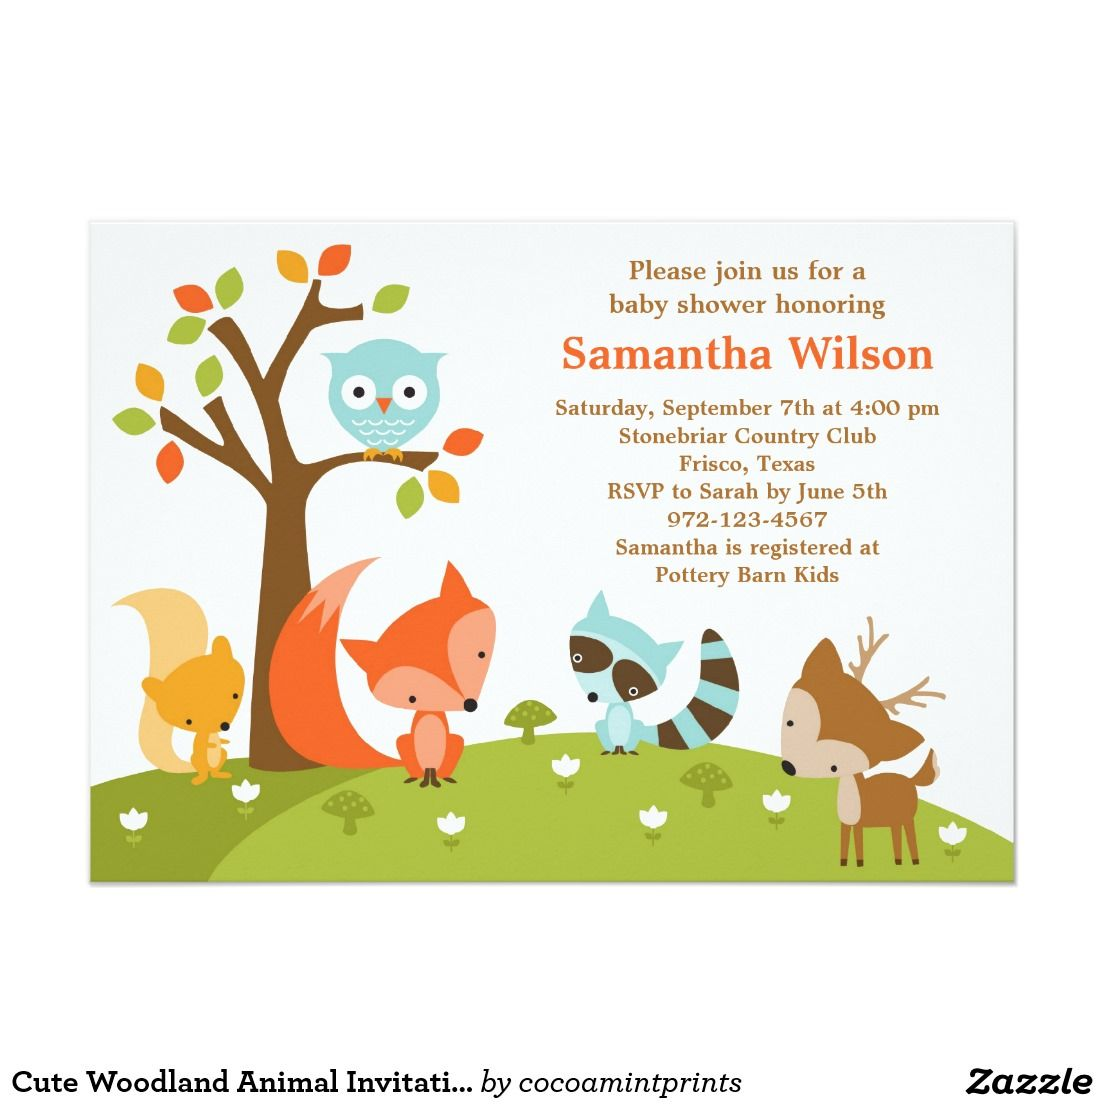 Cute Woodland Animal Invitation Woodland animals